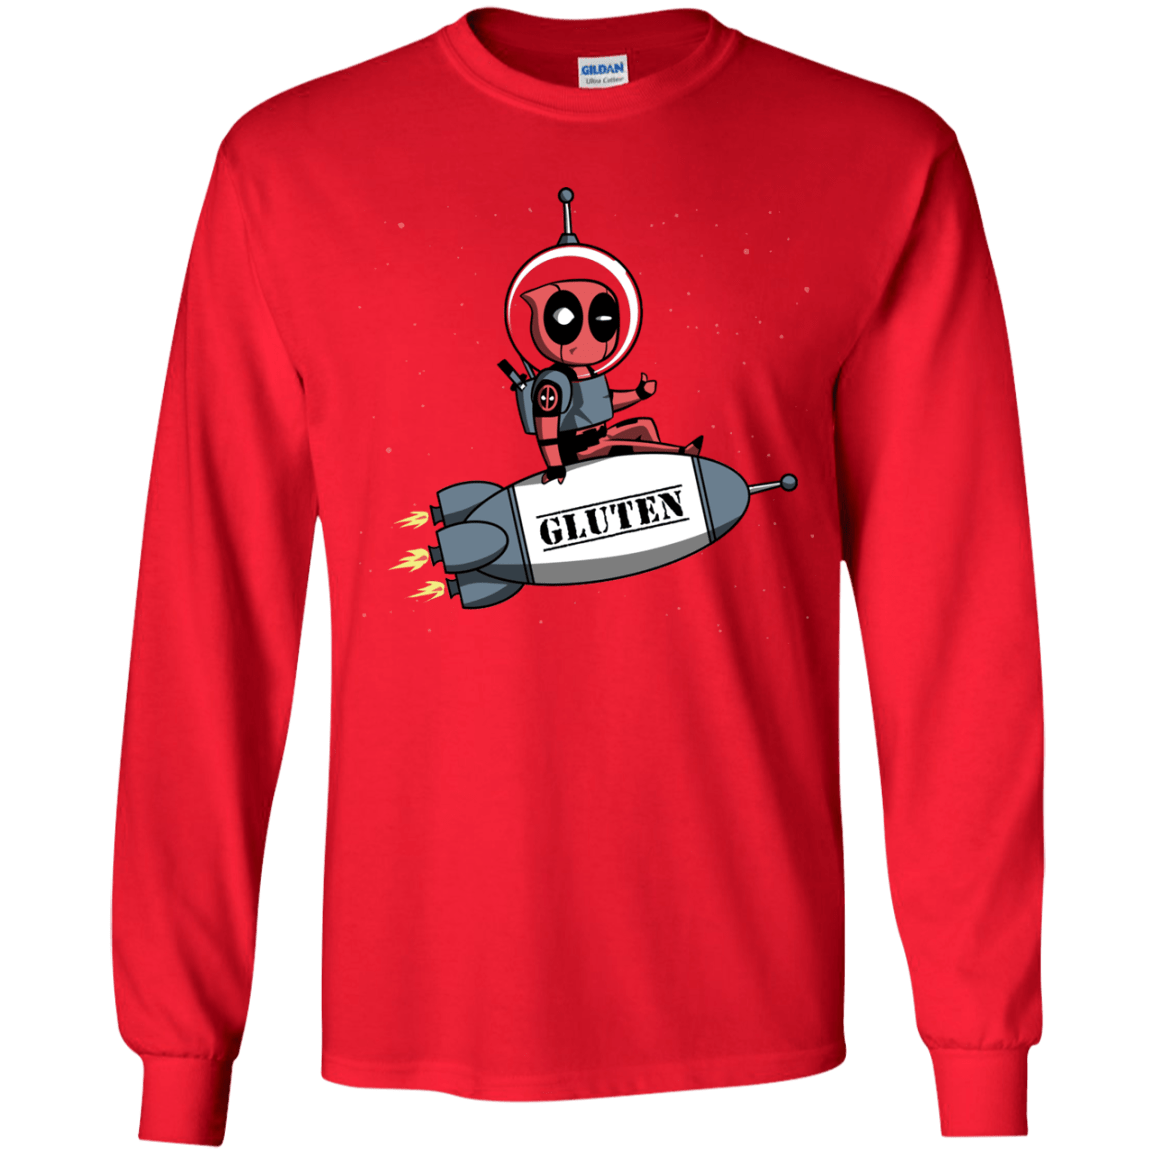 T-Shirts Red / YS Gluten No More Youth Long Sleeve T-Shirt